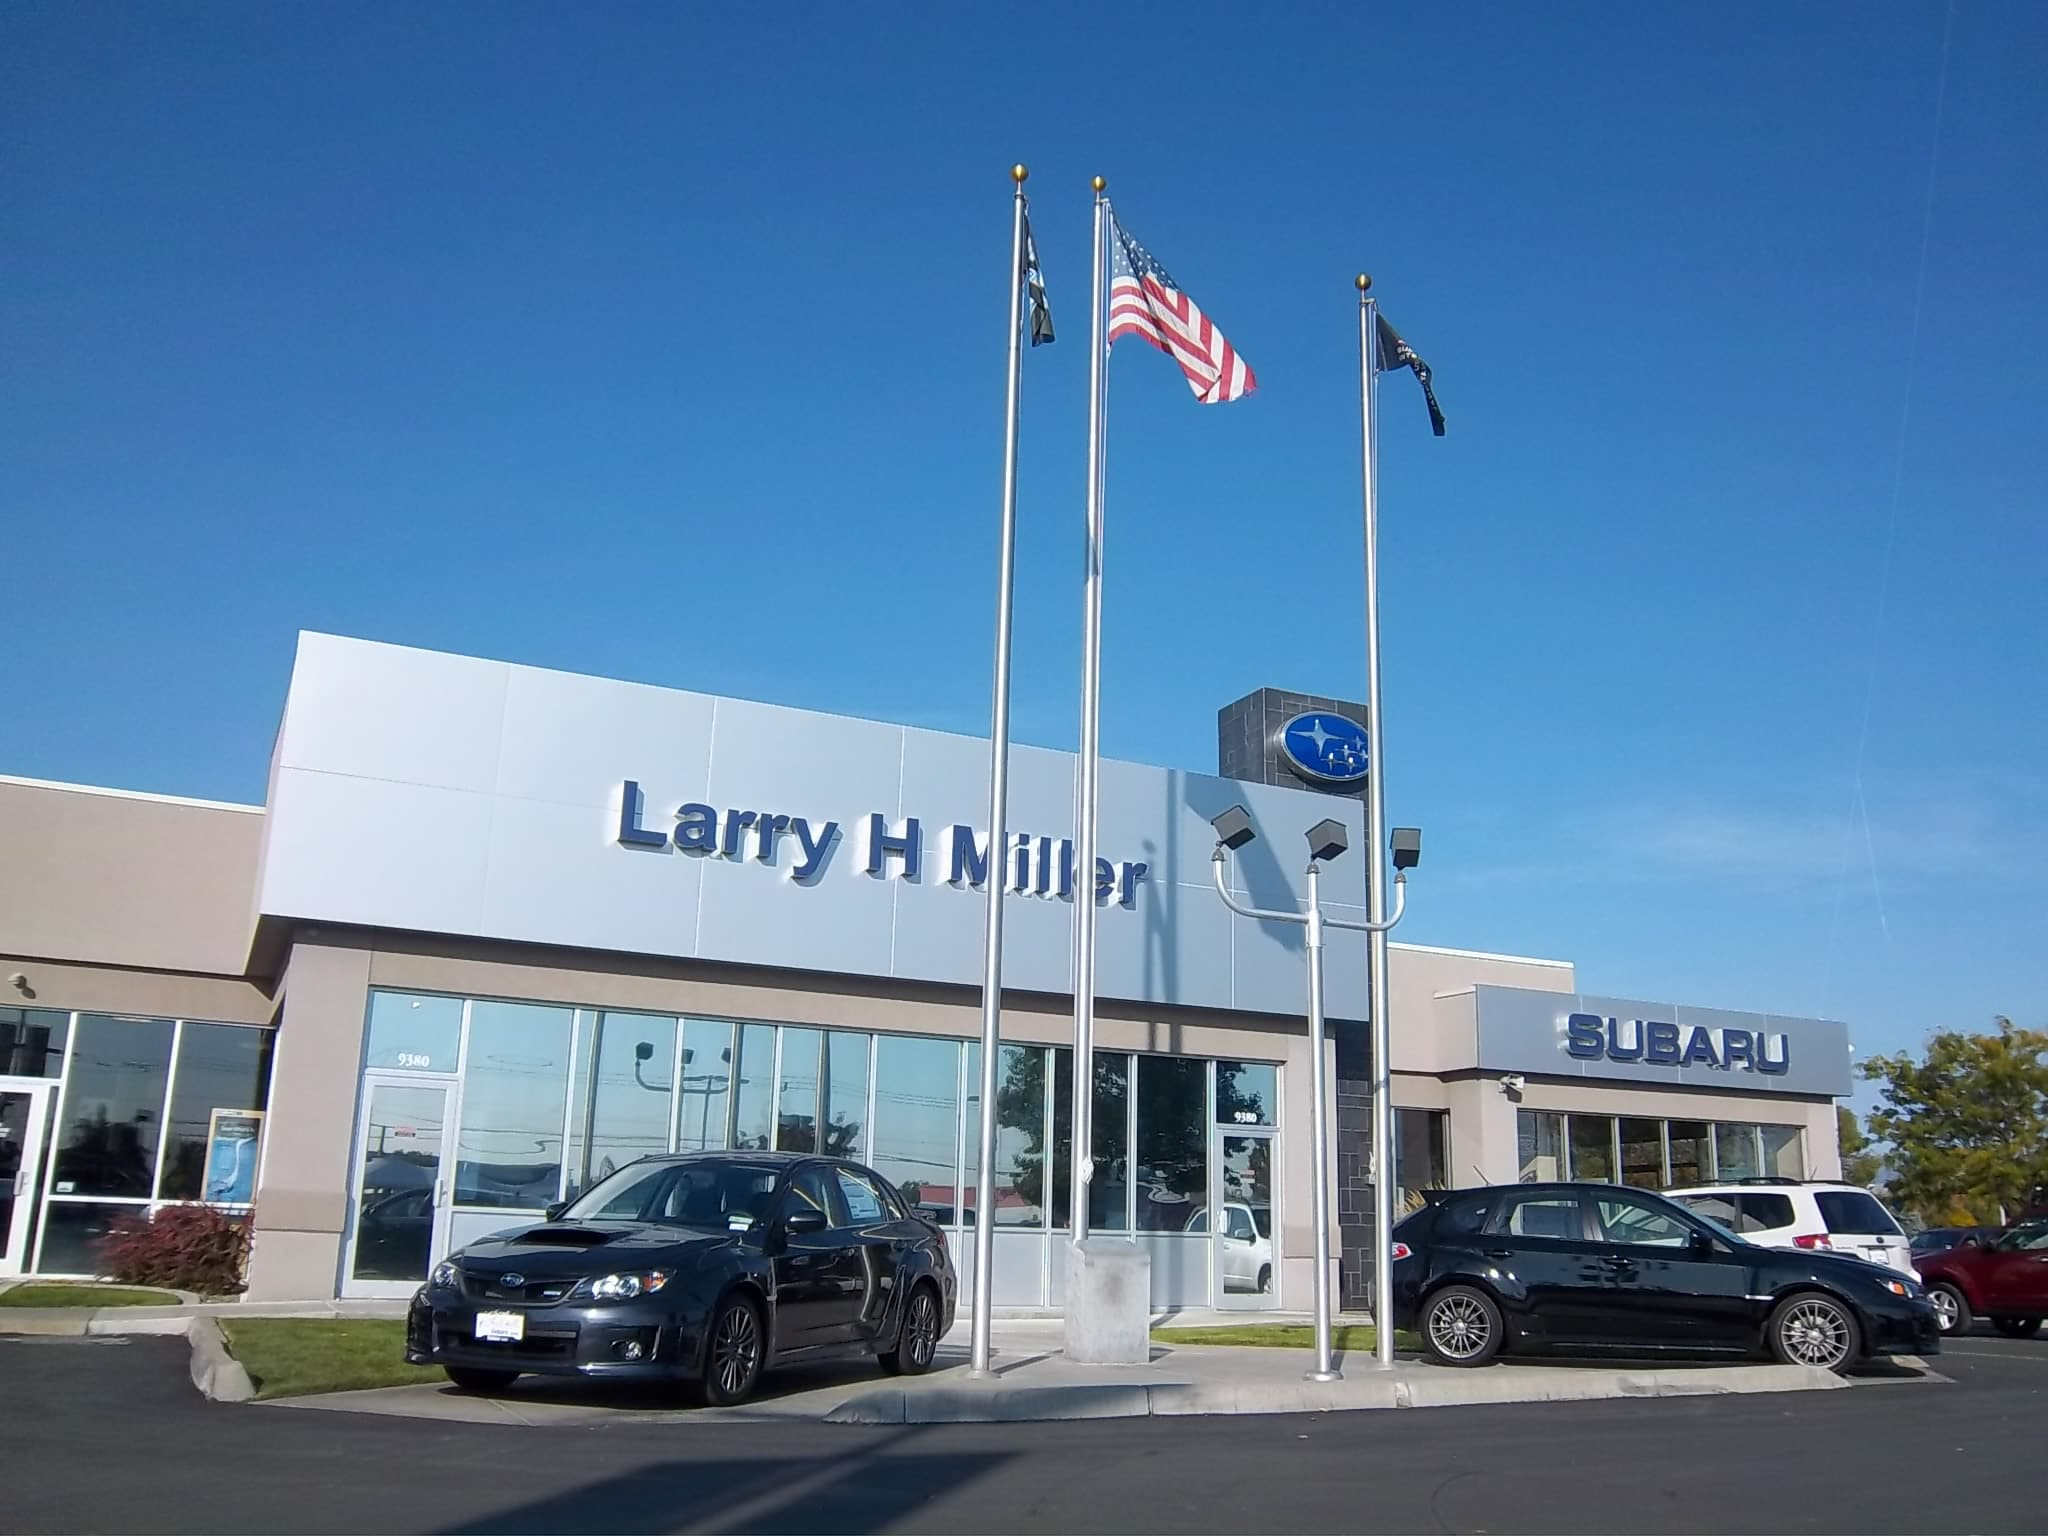 about larry miller subaru in boise idaho new used car dealer serving caldwell nampa meridian. Black Bedroom Furniture Sets. Home Design Ideas